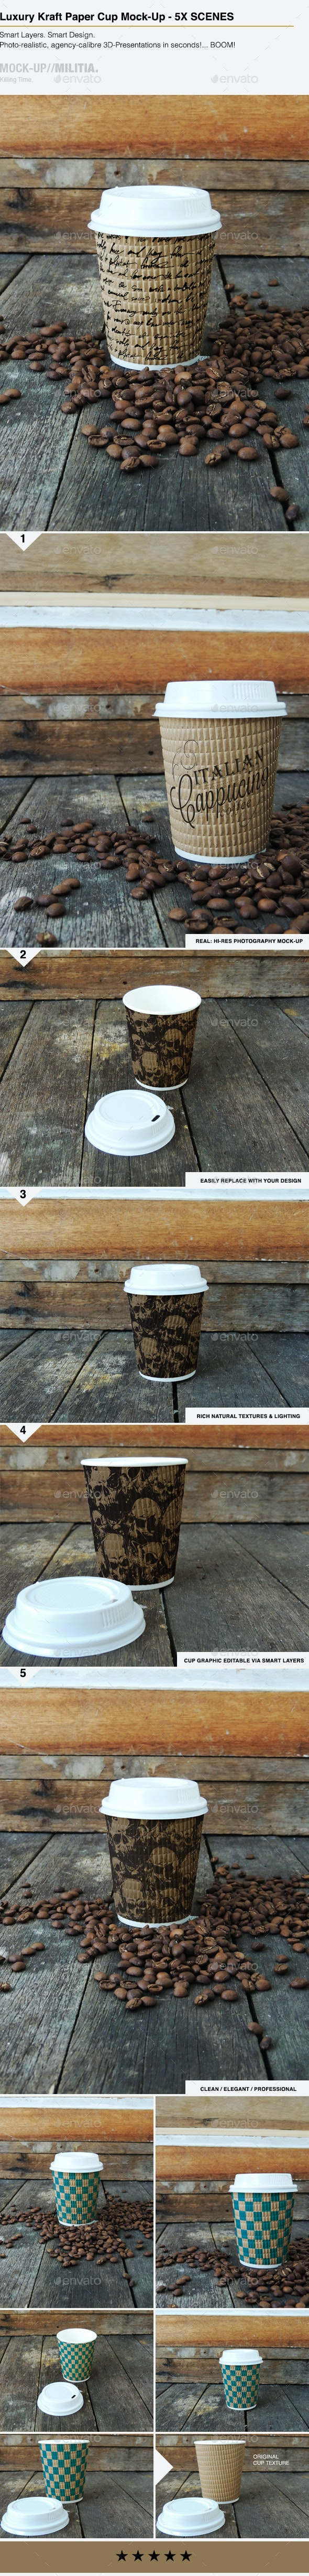 Luxury Kraft Paper - Disposable Coffee Cup Mock-Up - Food and Drink Packaging